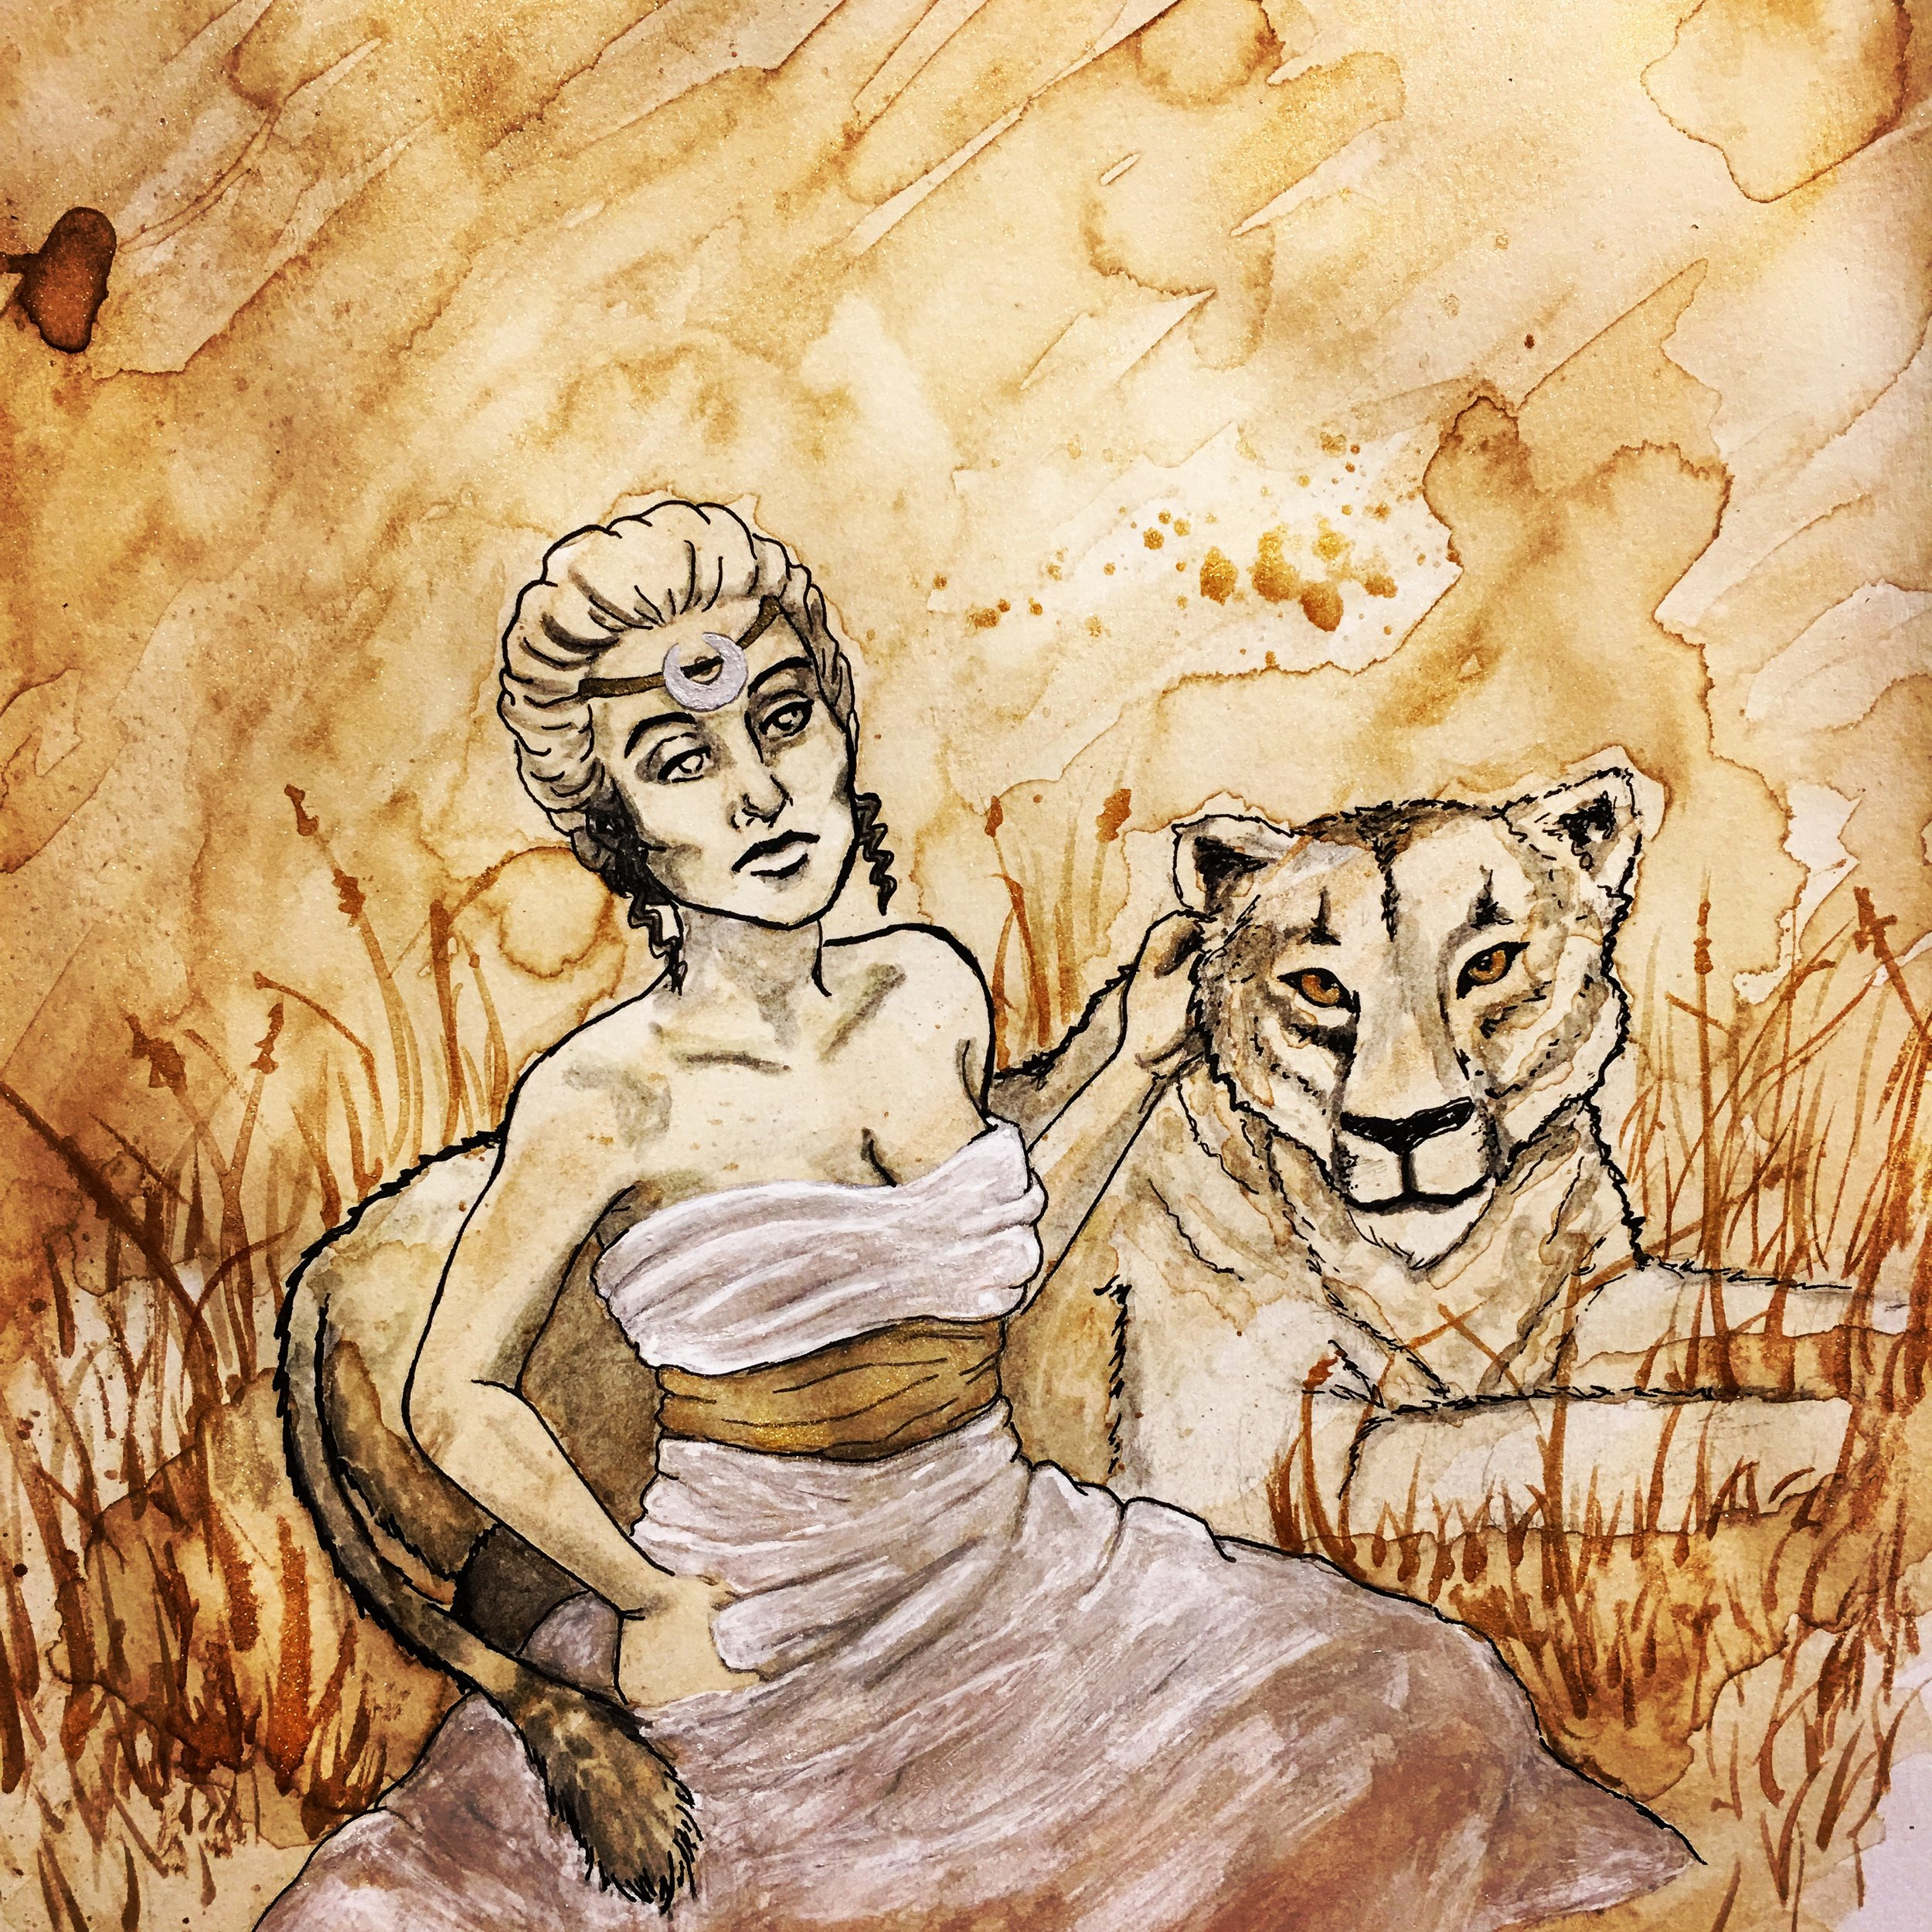 2018: The Lion & the Maiden